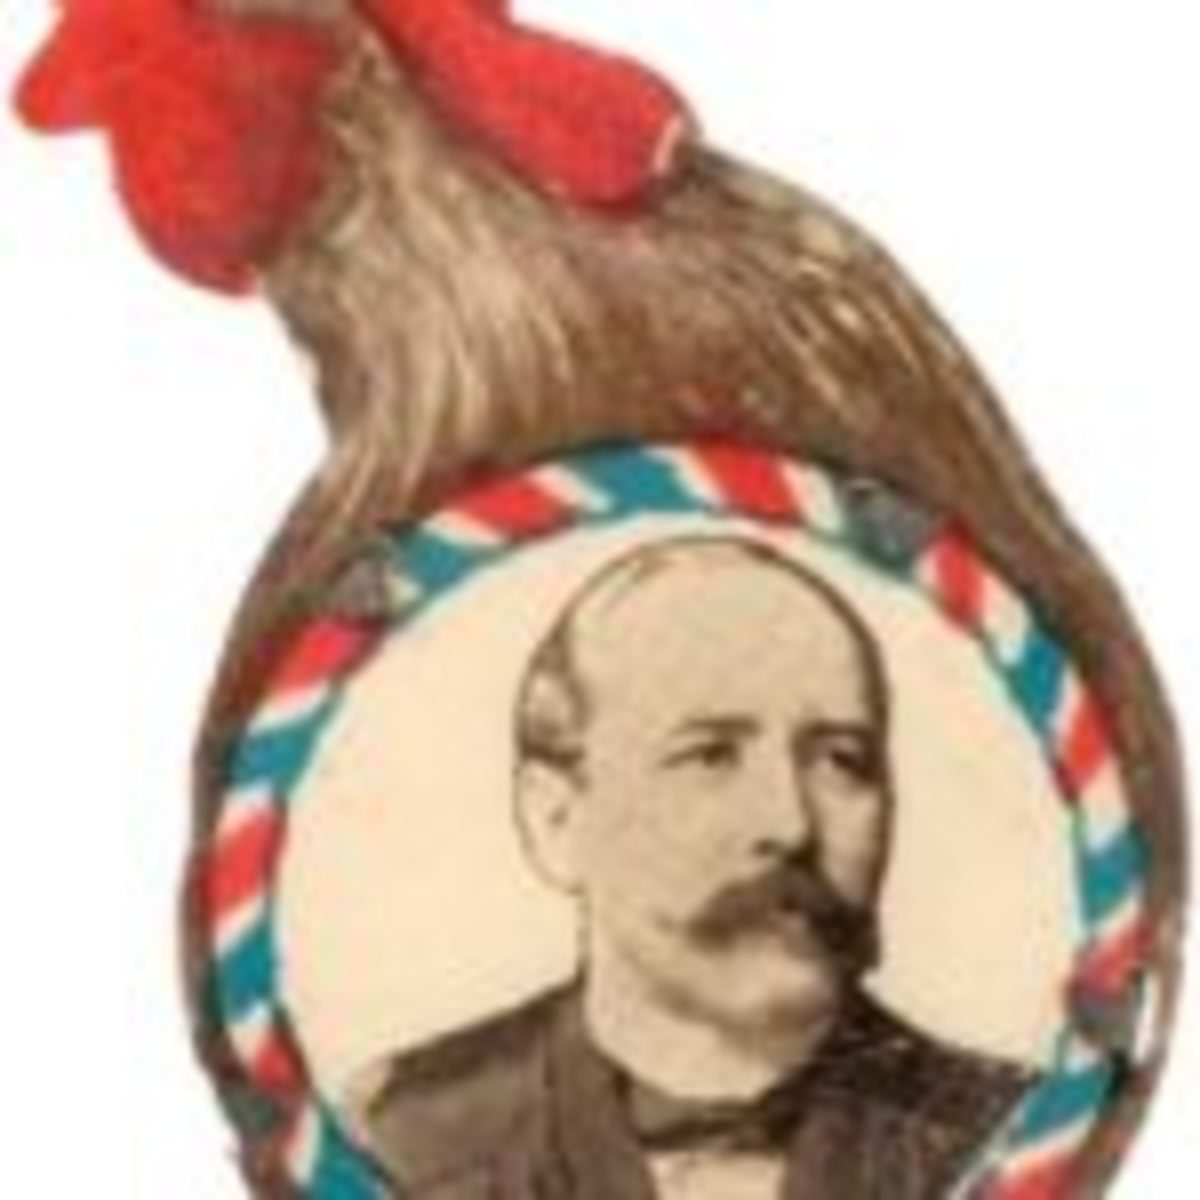 """Pinback, 1904, Alton B. Parker, diecut celluloid, crowing rooster with portrait of candidate at bottom, rooster and portrait are one piece of cello, and are affixed to thin metal back w/five tabs, 1-1/8"""" w. x 1-7/8"""" t., $1,740 Hake's Auctions, www.hakes.com"""